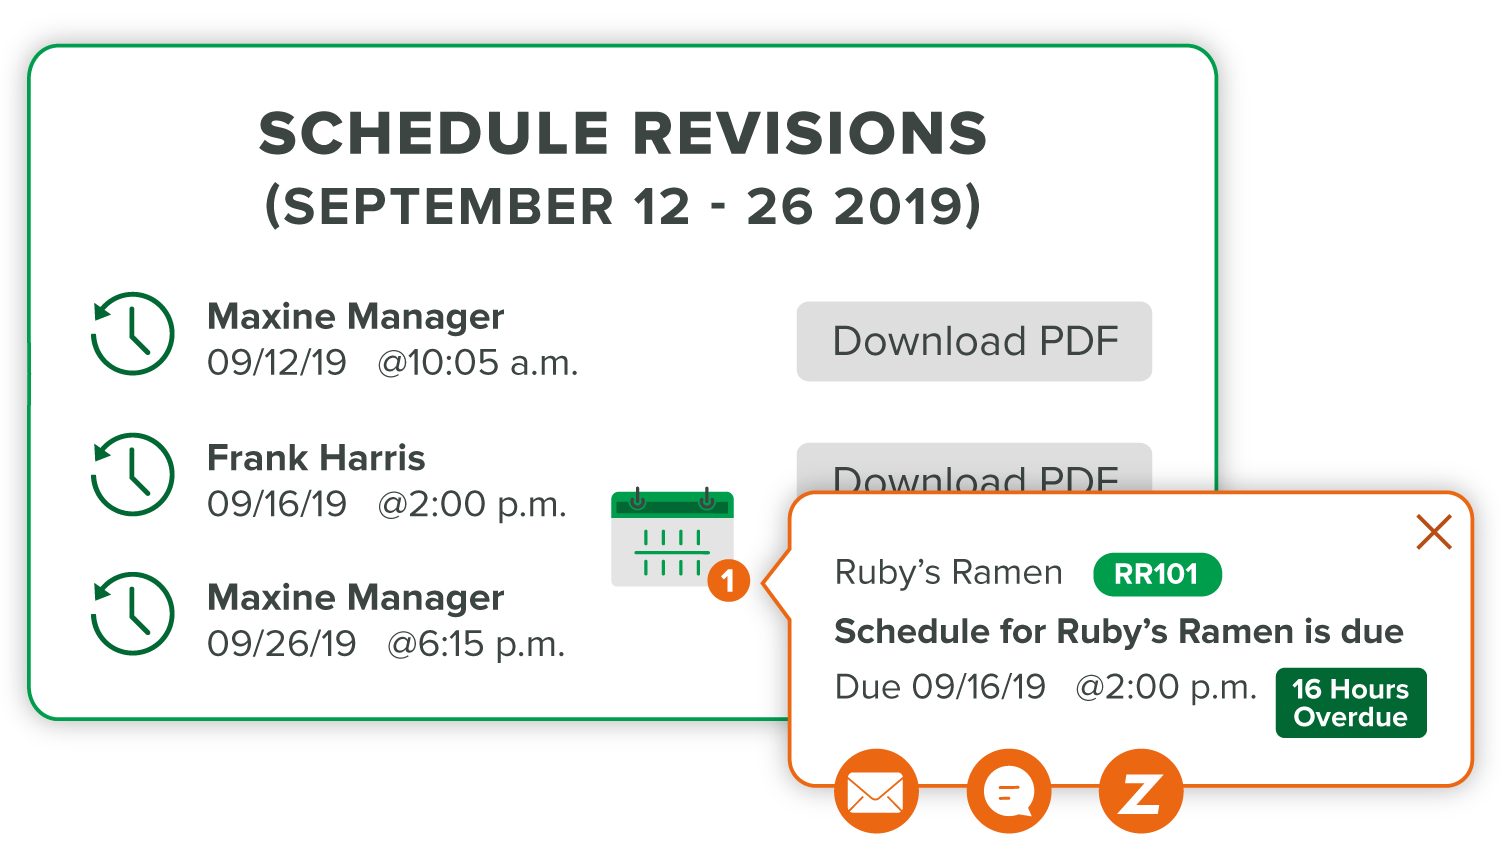 zignyl-Scheduling-Revisions-Big.png